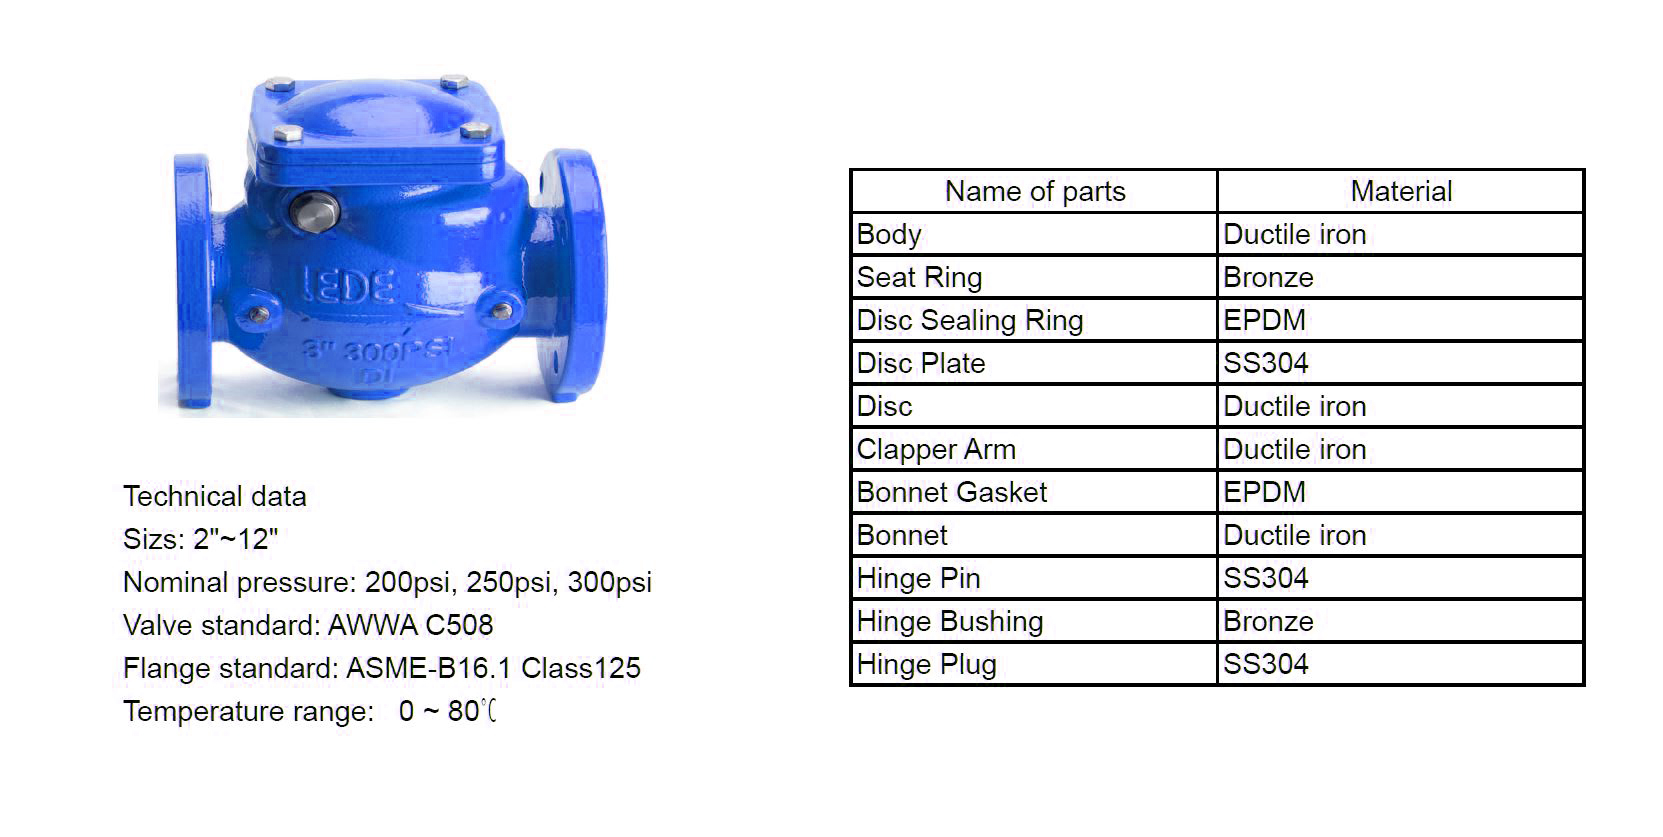 Valves_Water_Check_Flanged_char